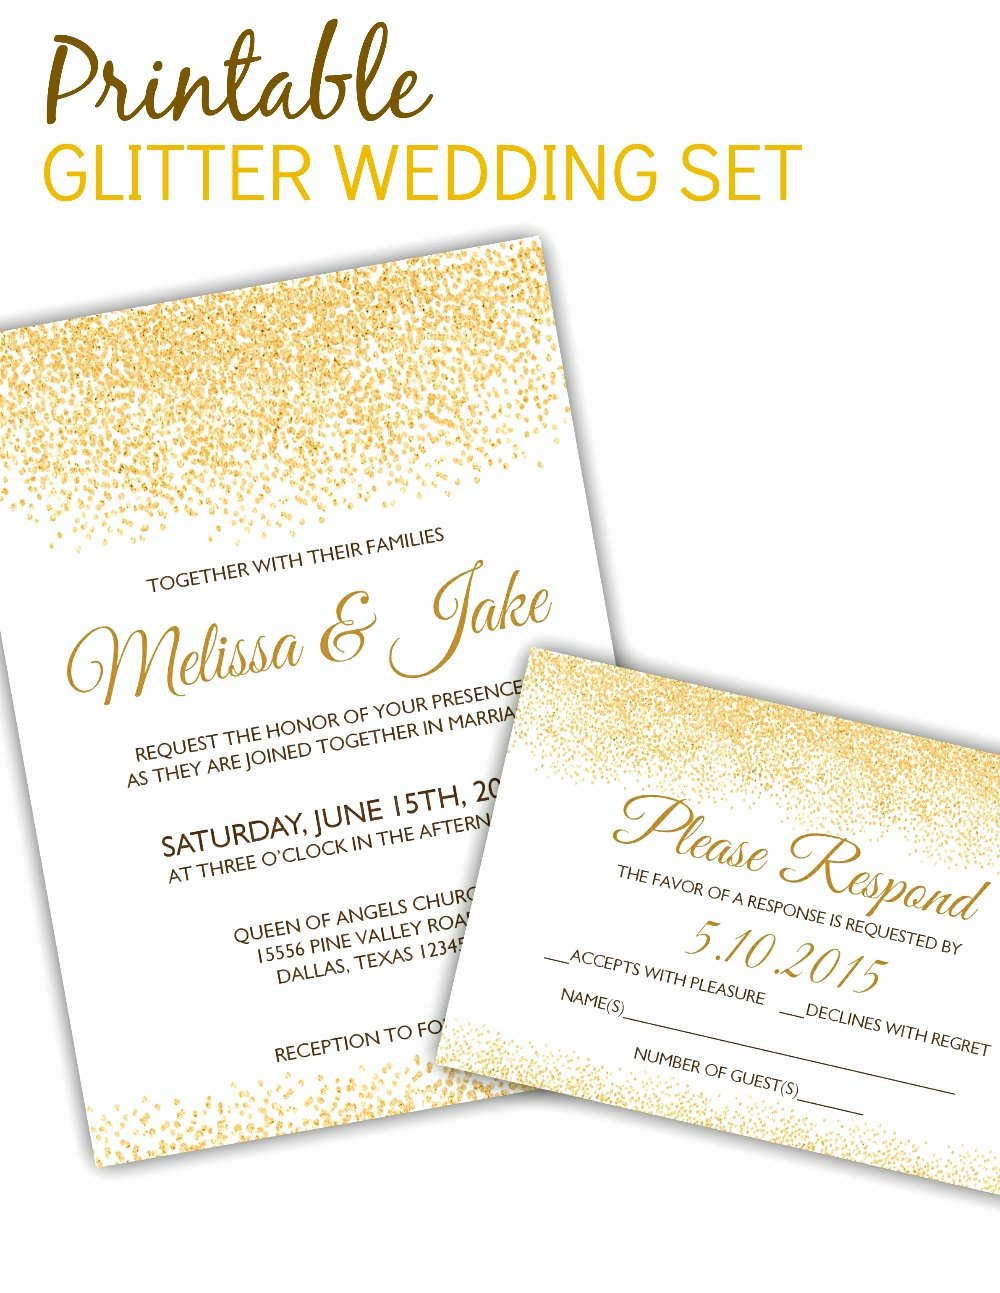 5x7 Invitation Template Word Best Of Printable Glitter Invitation & Rsvp Template Posh Pixel